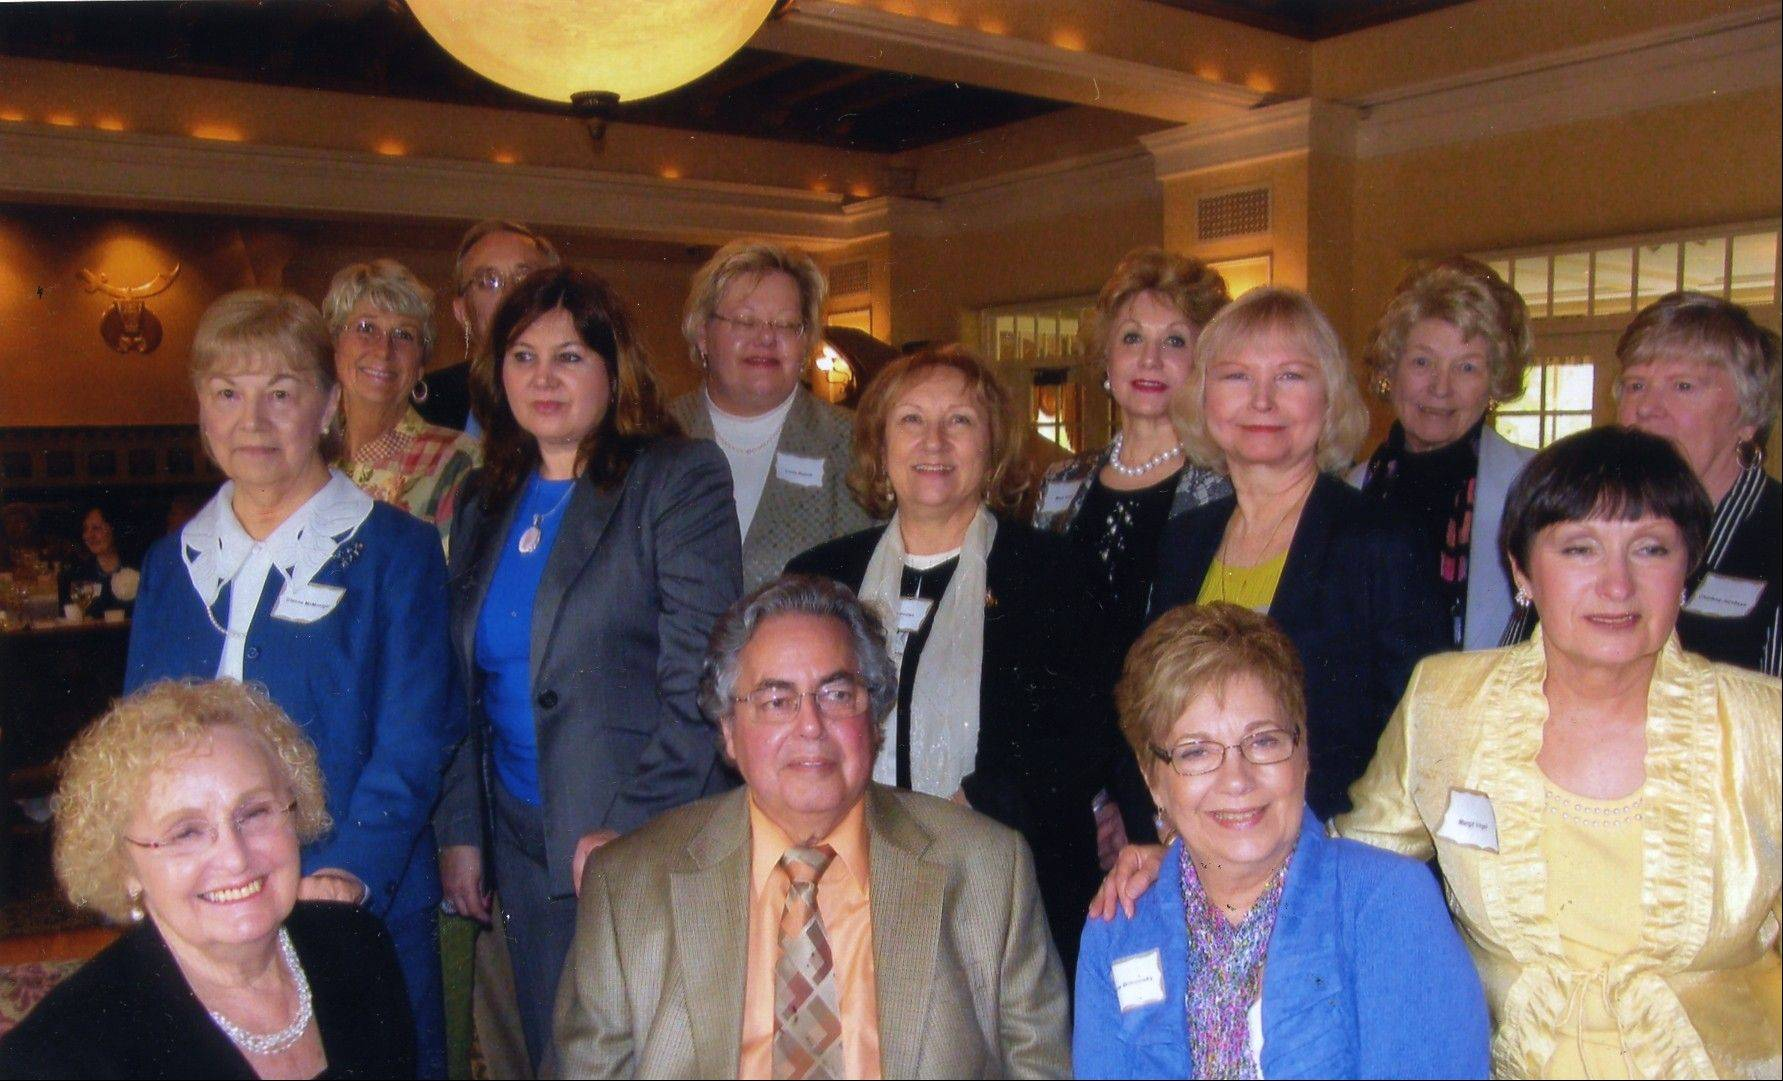 BCLOC newly installed officers pictured, from left, are: Front row: Maureen Brown, Howard Robins, Marlene Boncosky and Margit Vogel; back row: Glenne McMonigal, Heide Carlini, Dr. Gerald Budzik, Claudia Bostic, Linda Budzik, Nancy Hozian, Mary Green, Diane Johnson, Toni Savadel, and Charlene Jacobsen. Not pictured are: David Nelleman, Mary Robins and Catherine Mura.